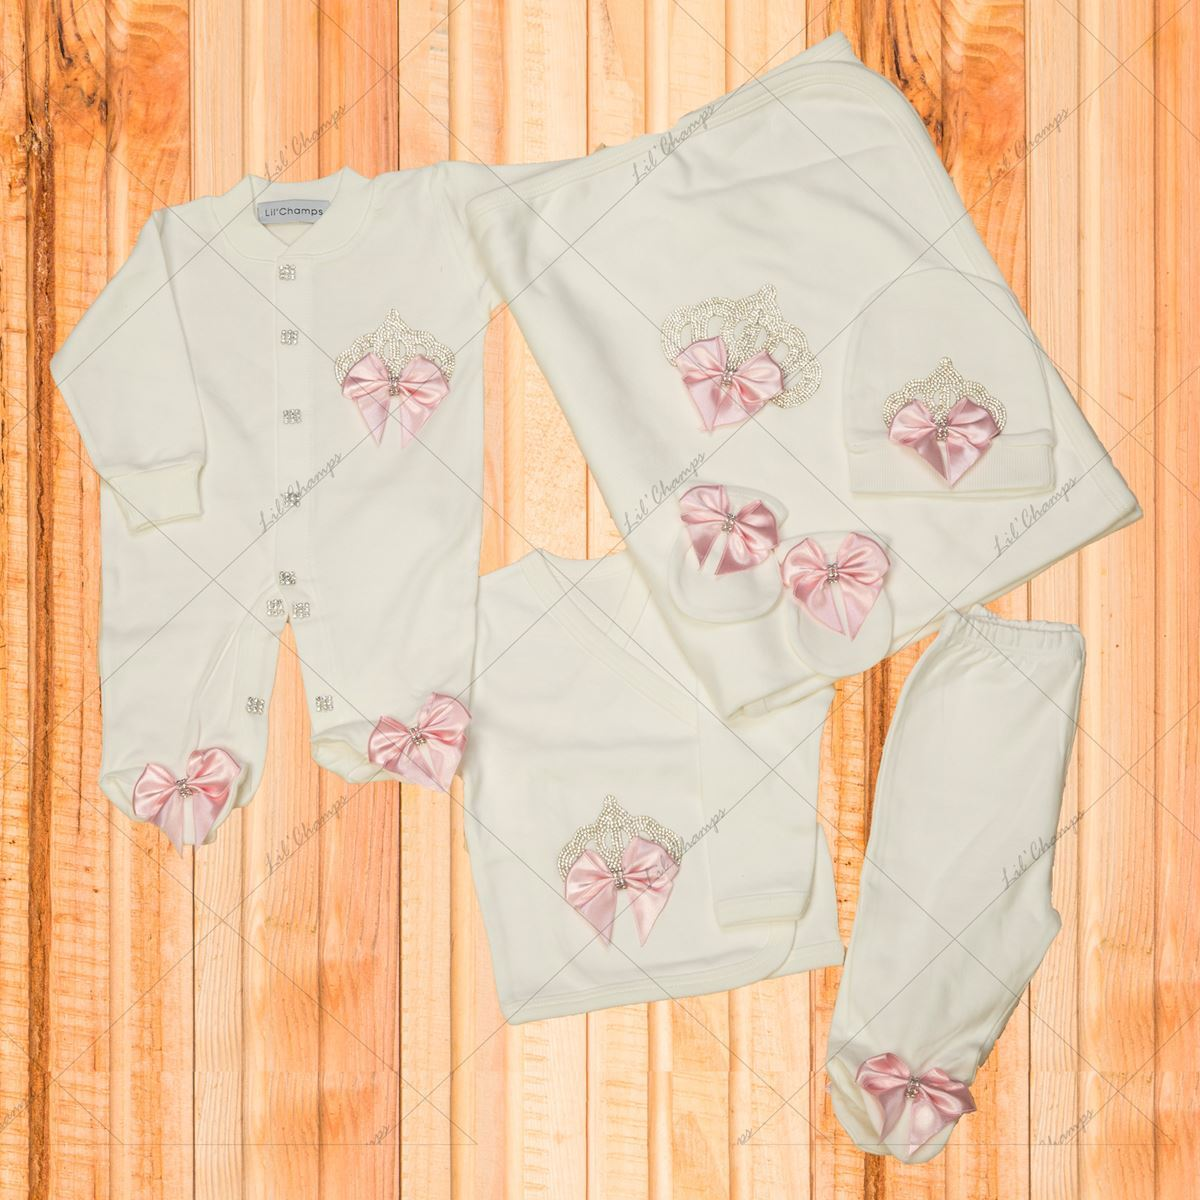 10 Pieces Pink and white Princess New Born Set -lilchamps